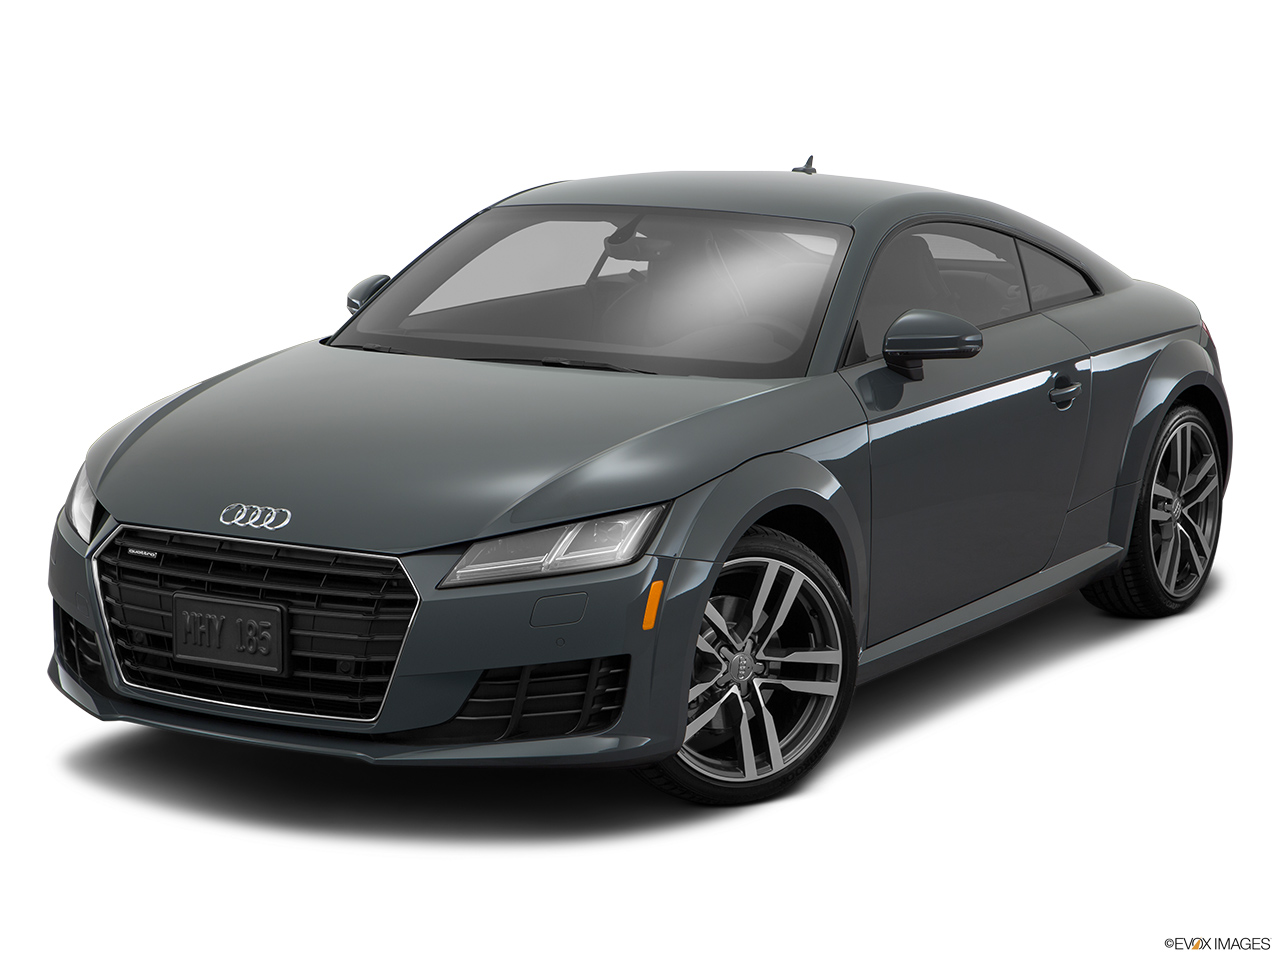 Audi TT Prices In Egypt Gulf Specs Reviews For Cairo - Audi car egypt